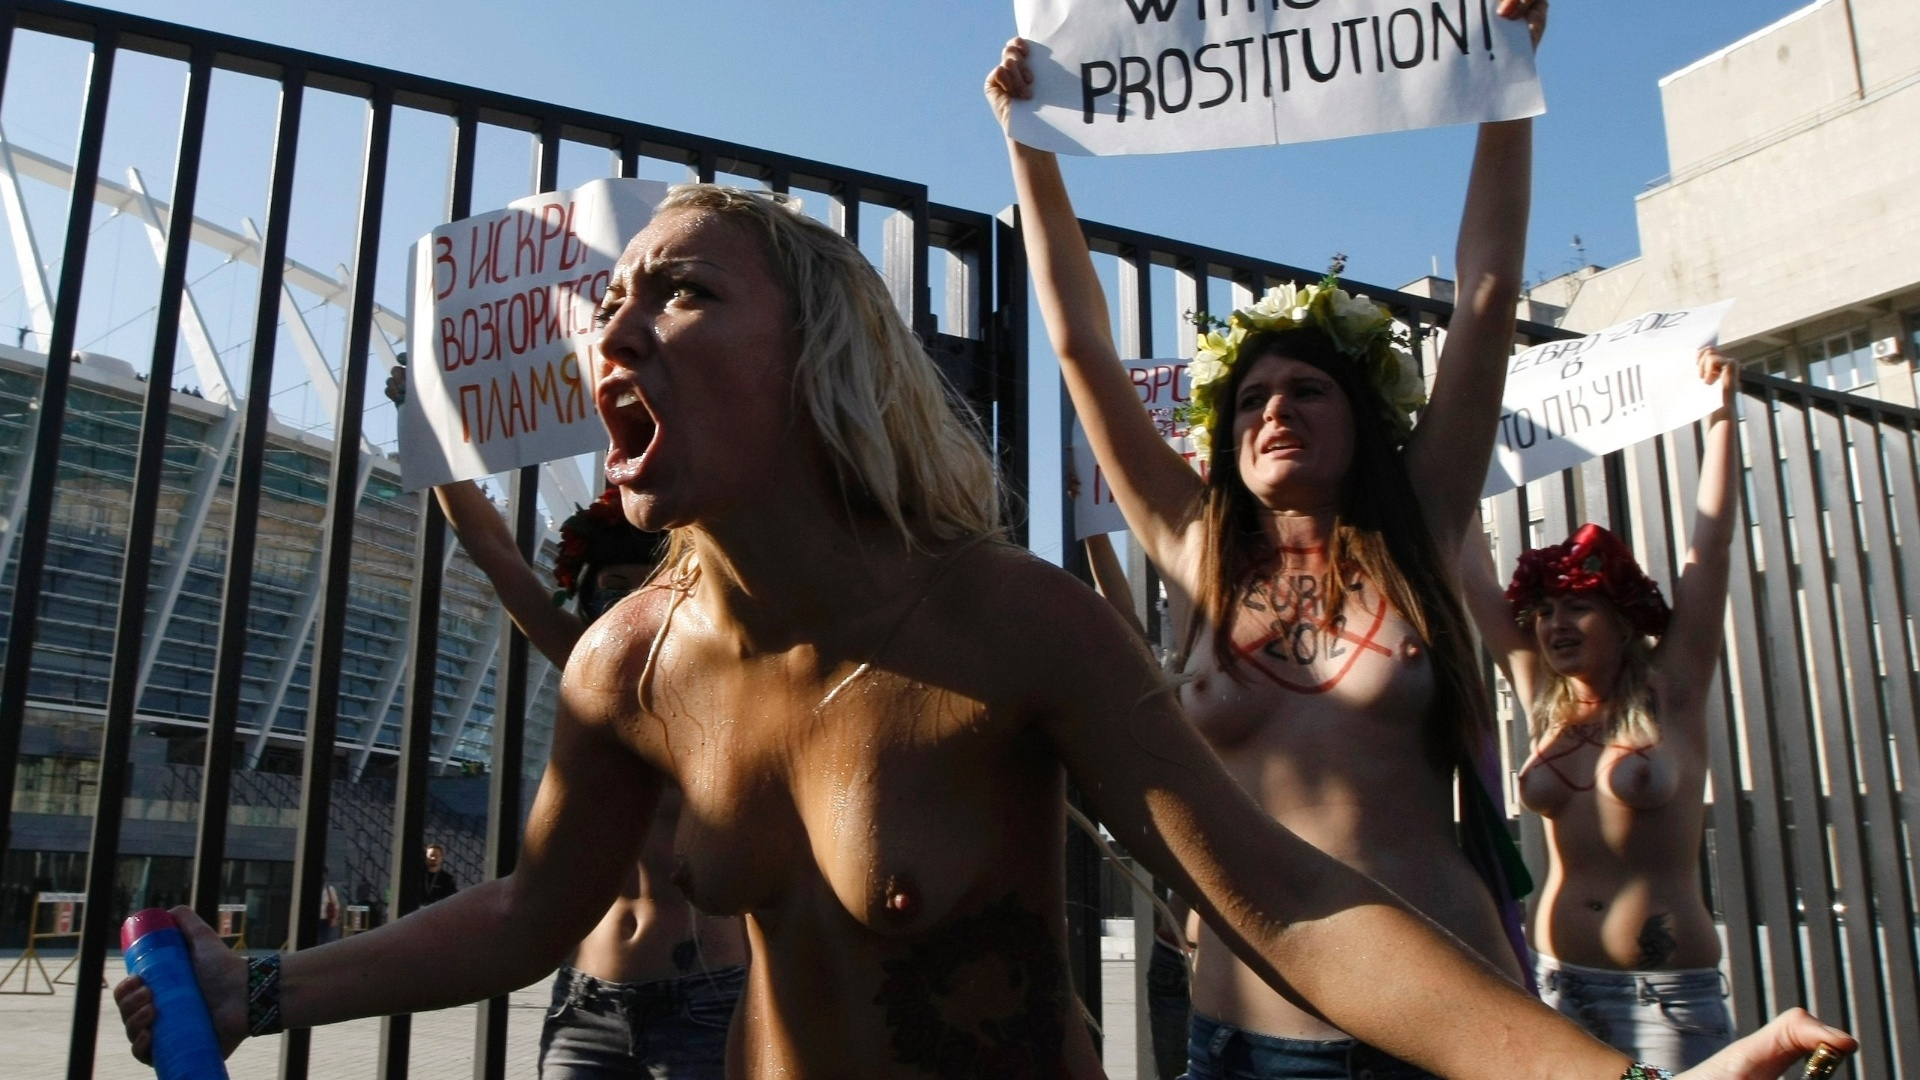 Ativistas do grupo Femen foram ao estdio Olmpico, em Kiev, para protestar. Elas pediram  Uefa e s autoridades ucranianas para que fortaleam o combate  prostituio